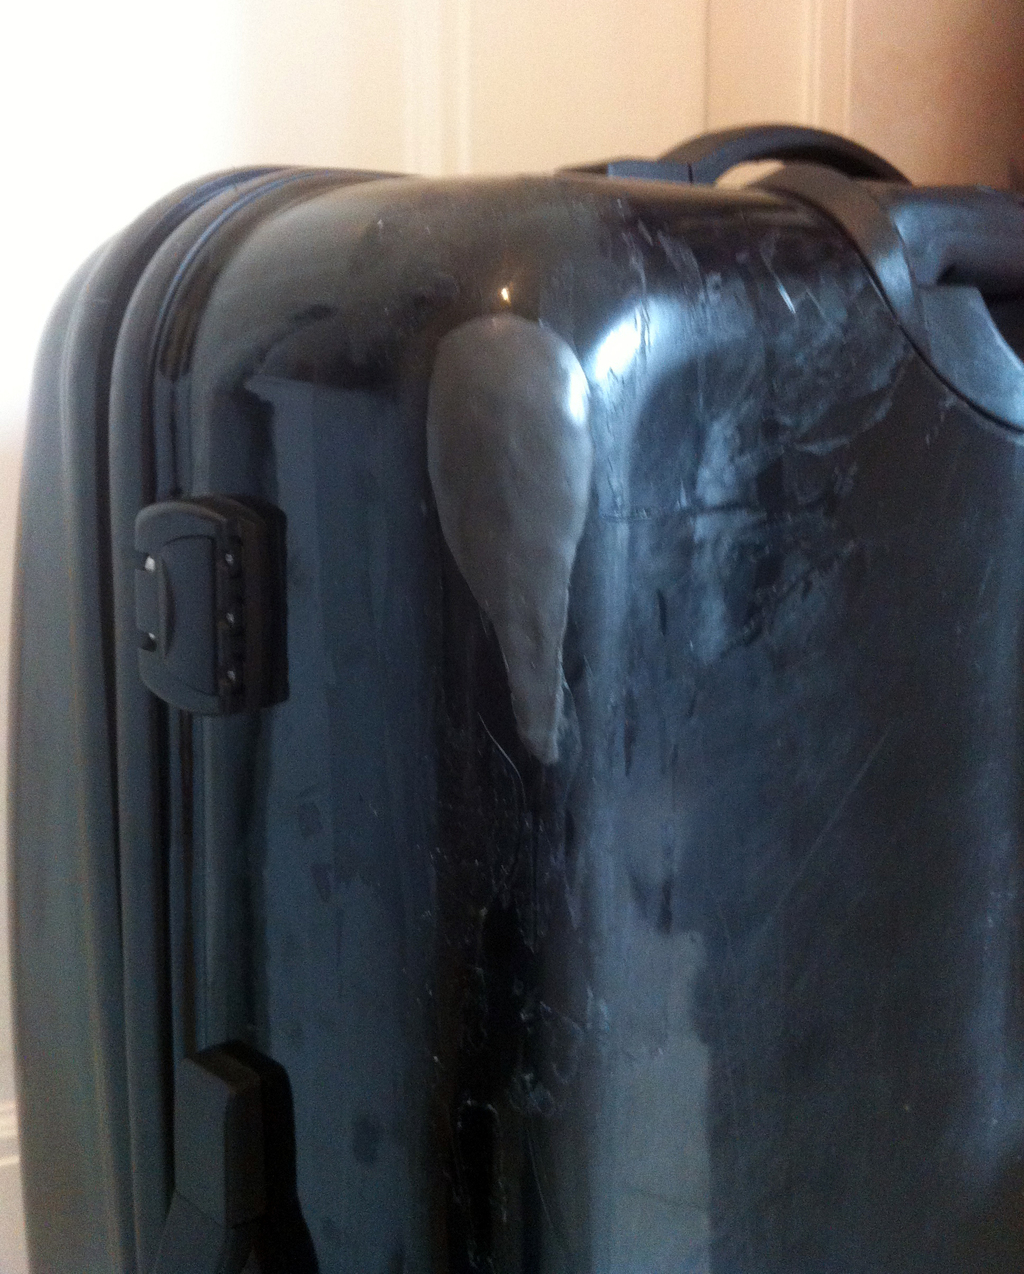 Patch up a hard shell suitcase